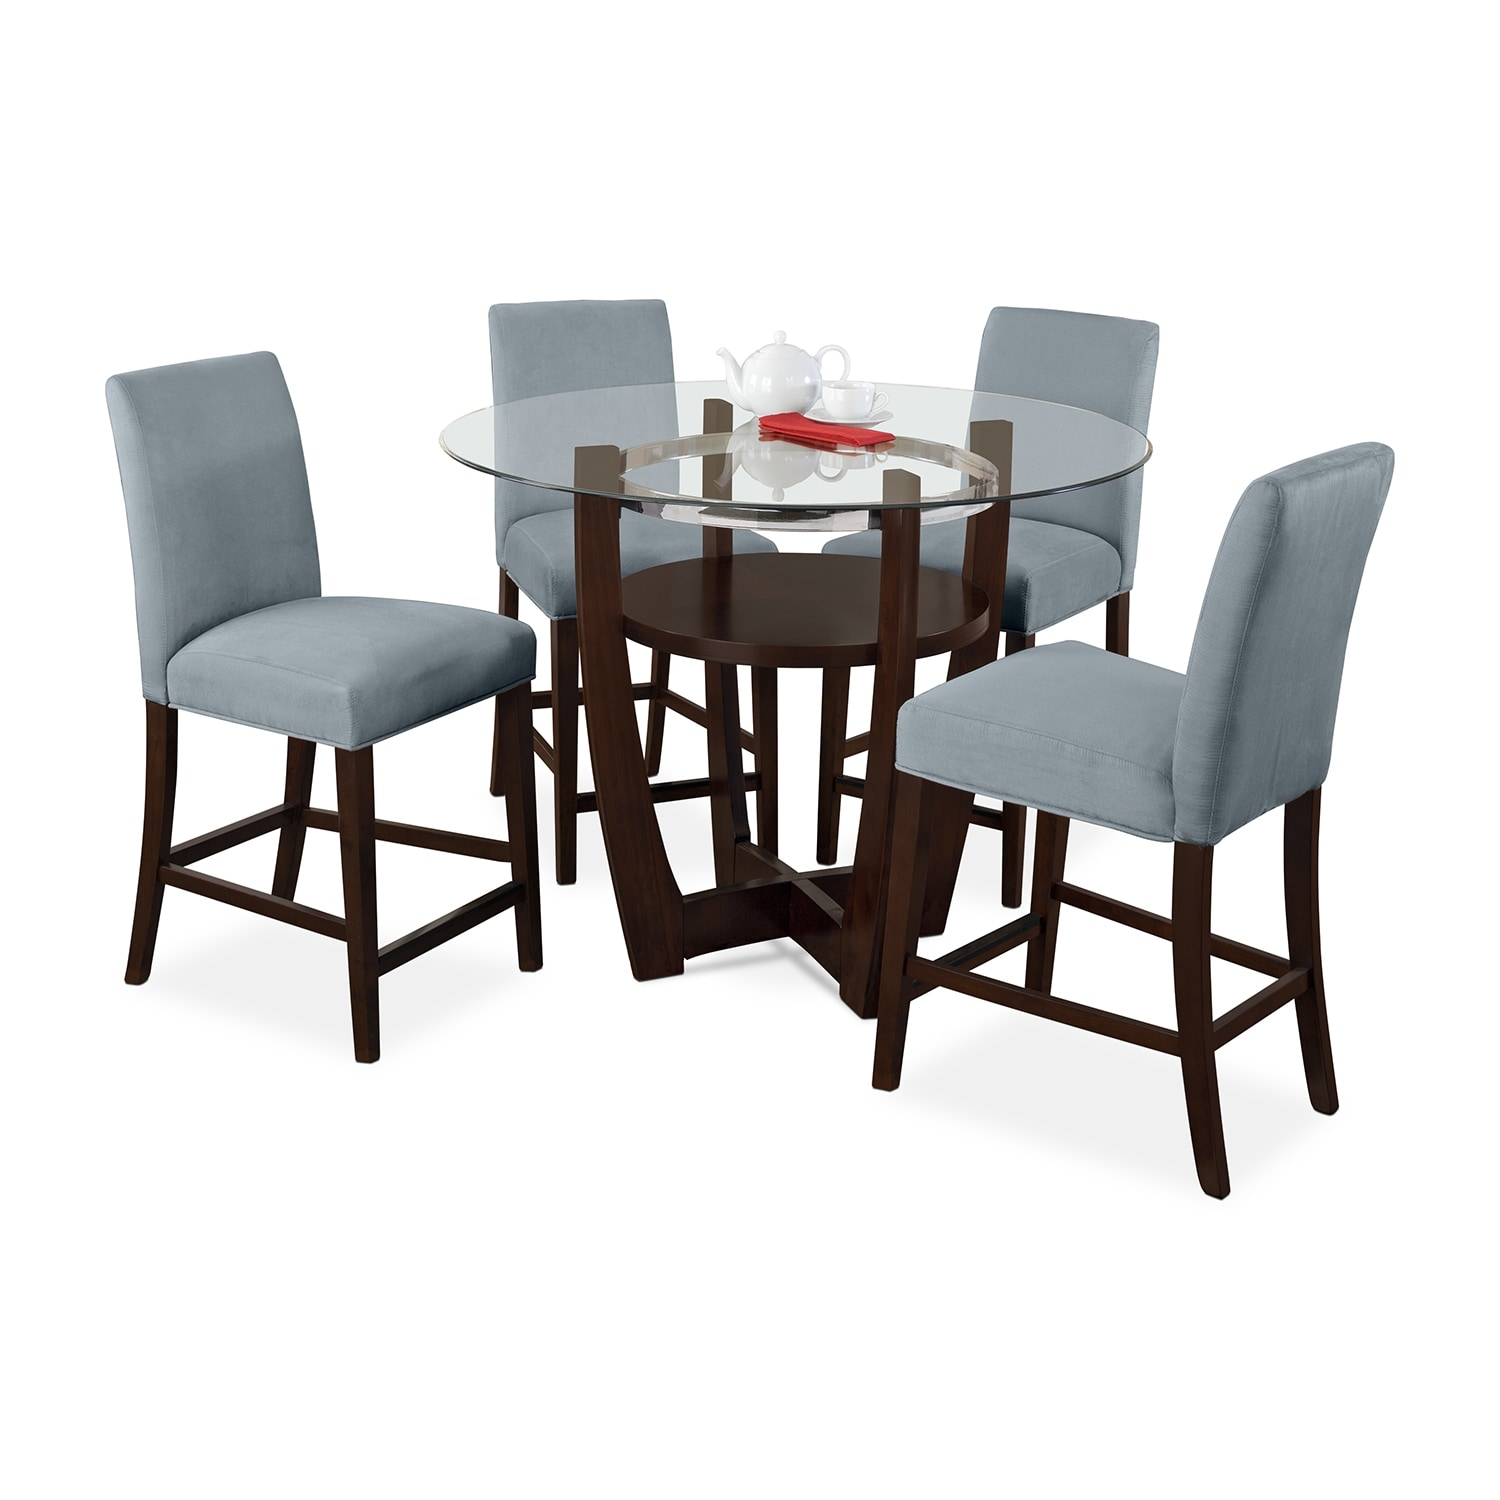 Alcove Counter-Height Dinette with 4 Side Chairs - Aqua